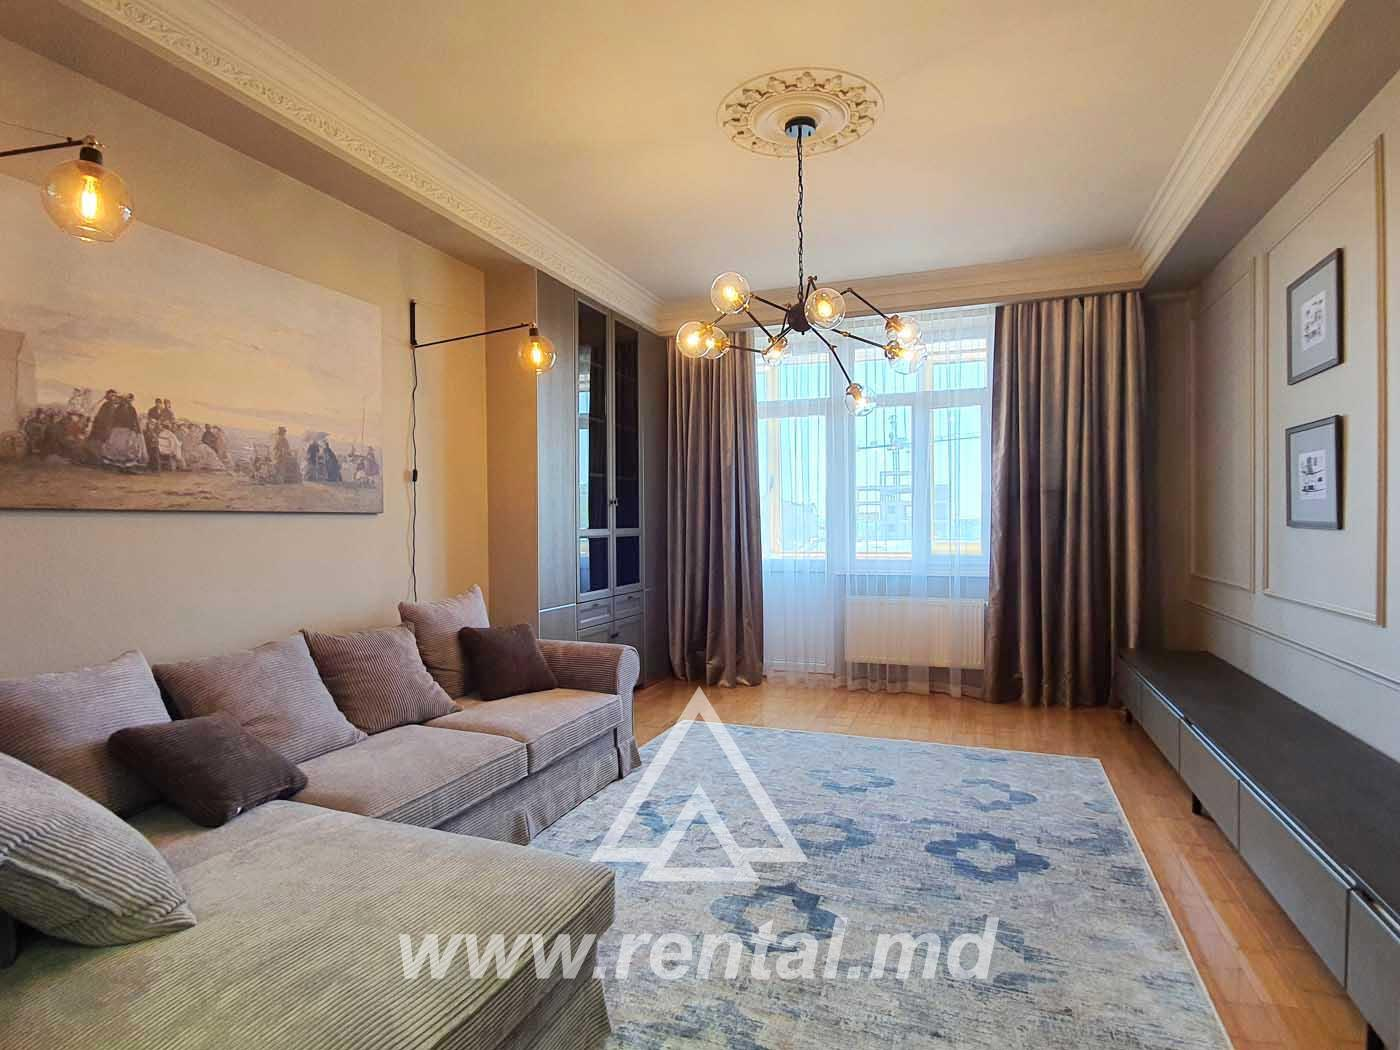 Rental apartment in Lara City